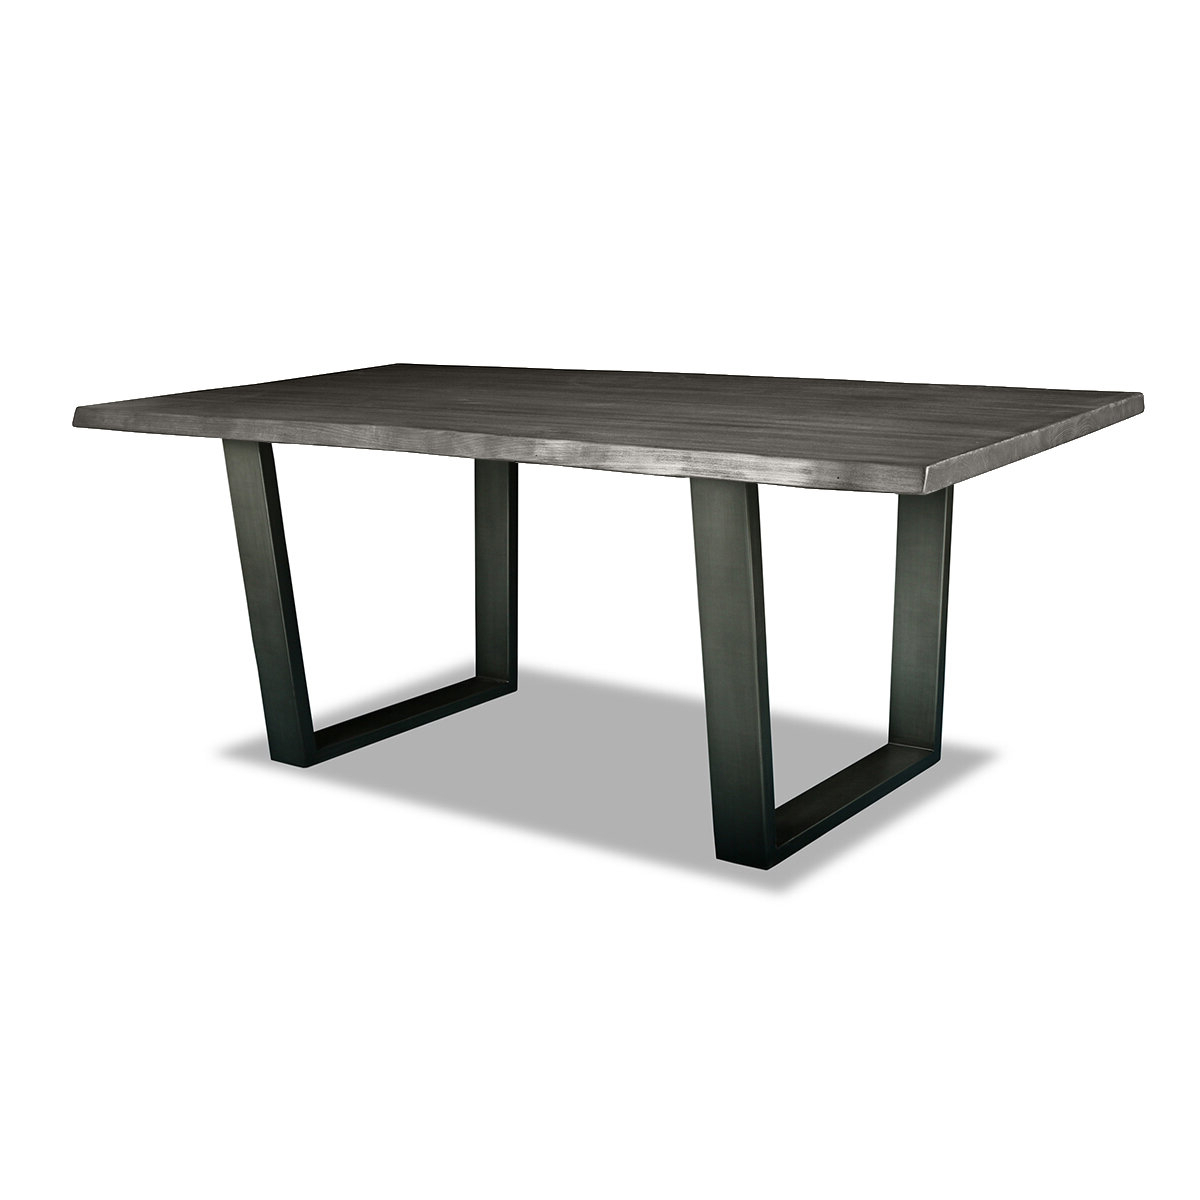 Favorite Bullen Solid Wood Dining Table Intended For Acacia Dining Tables With Black Rocket Legs (View 23 of 25)